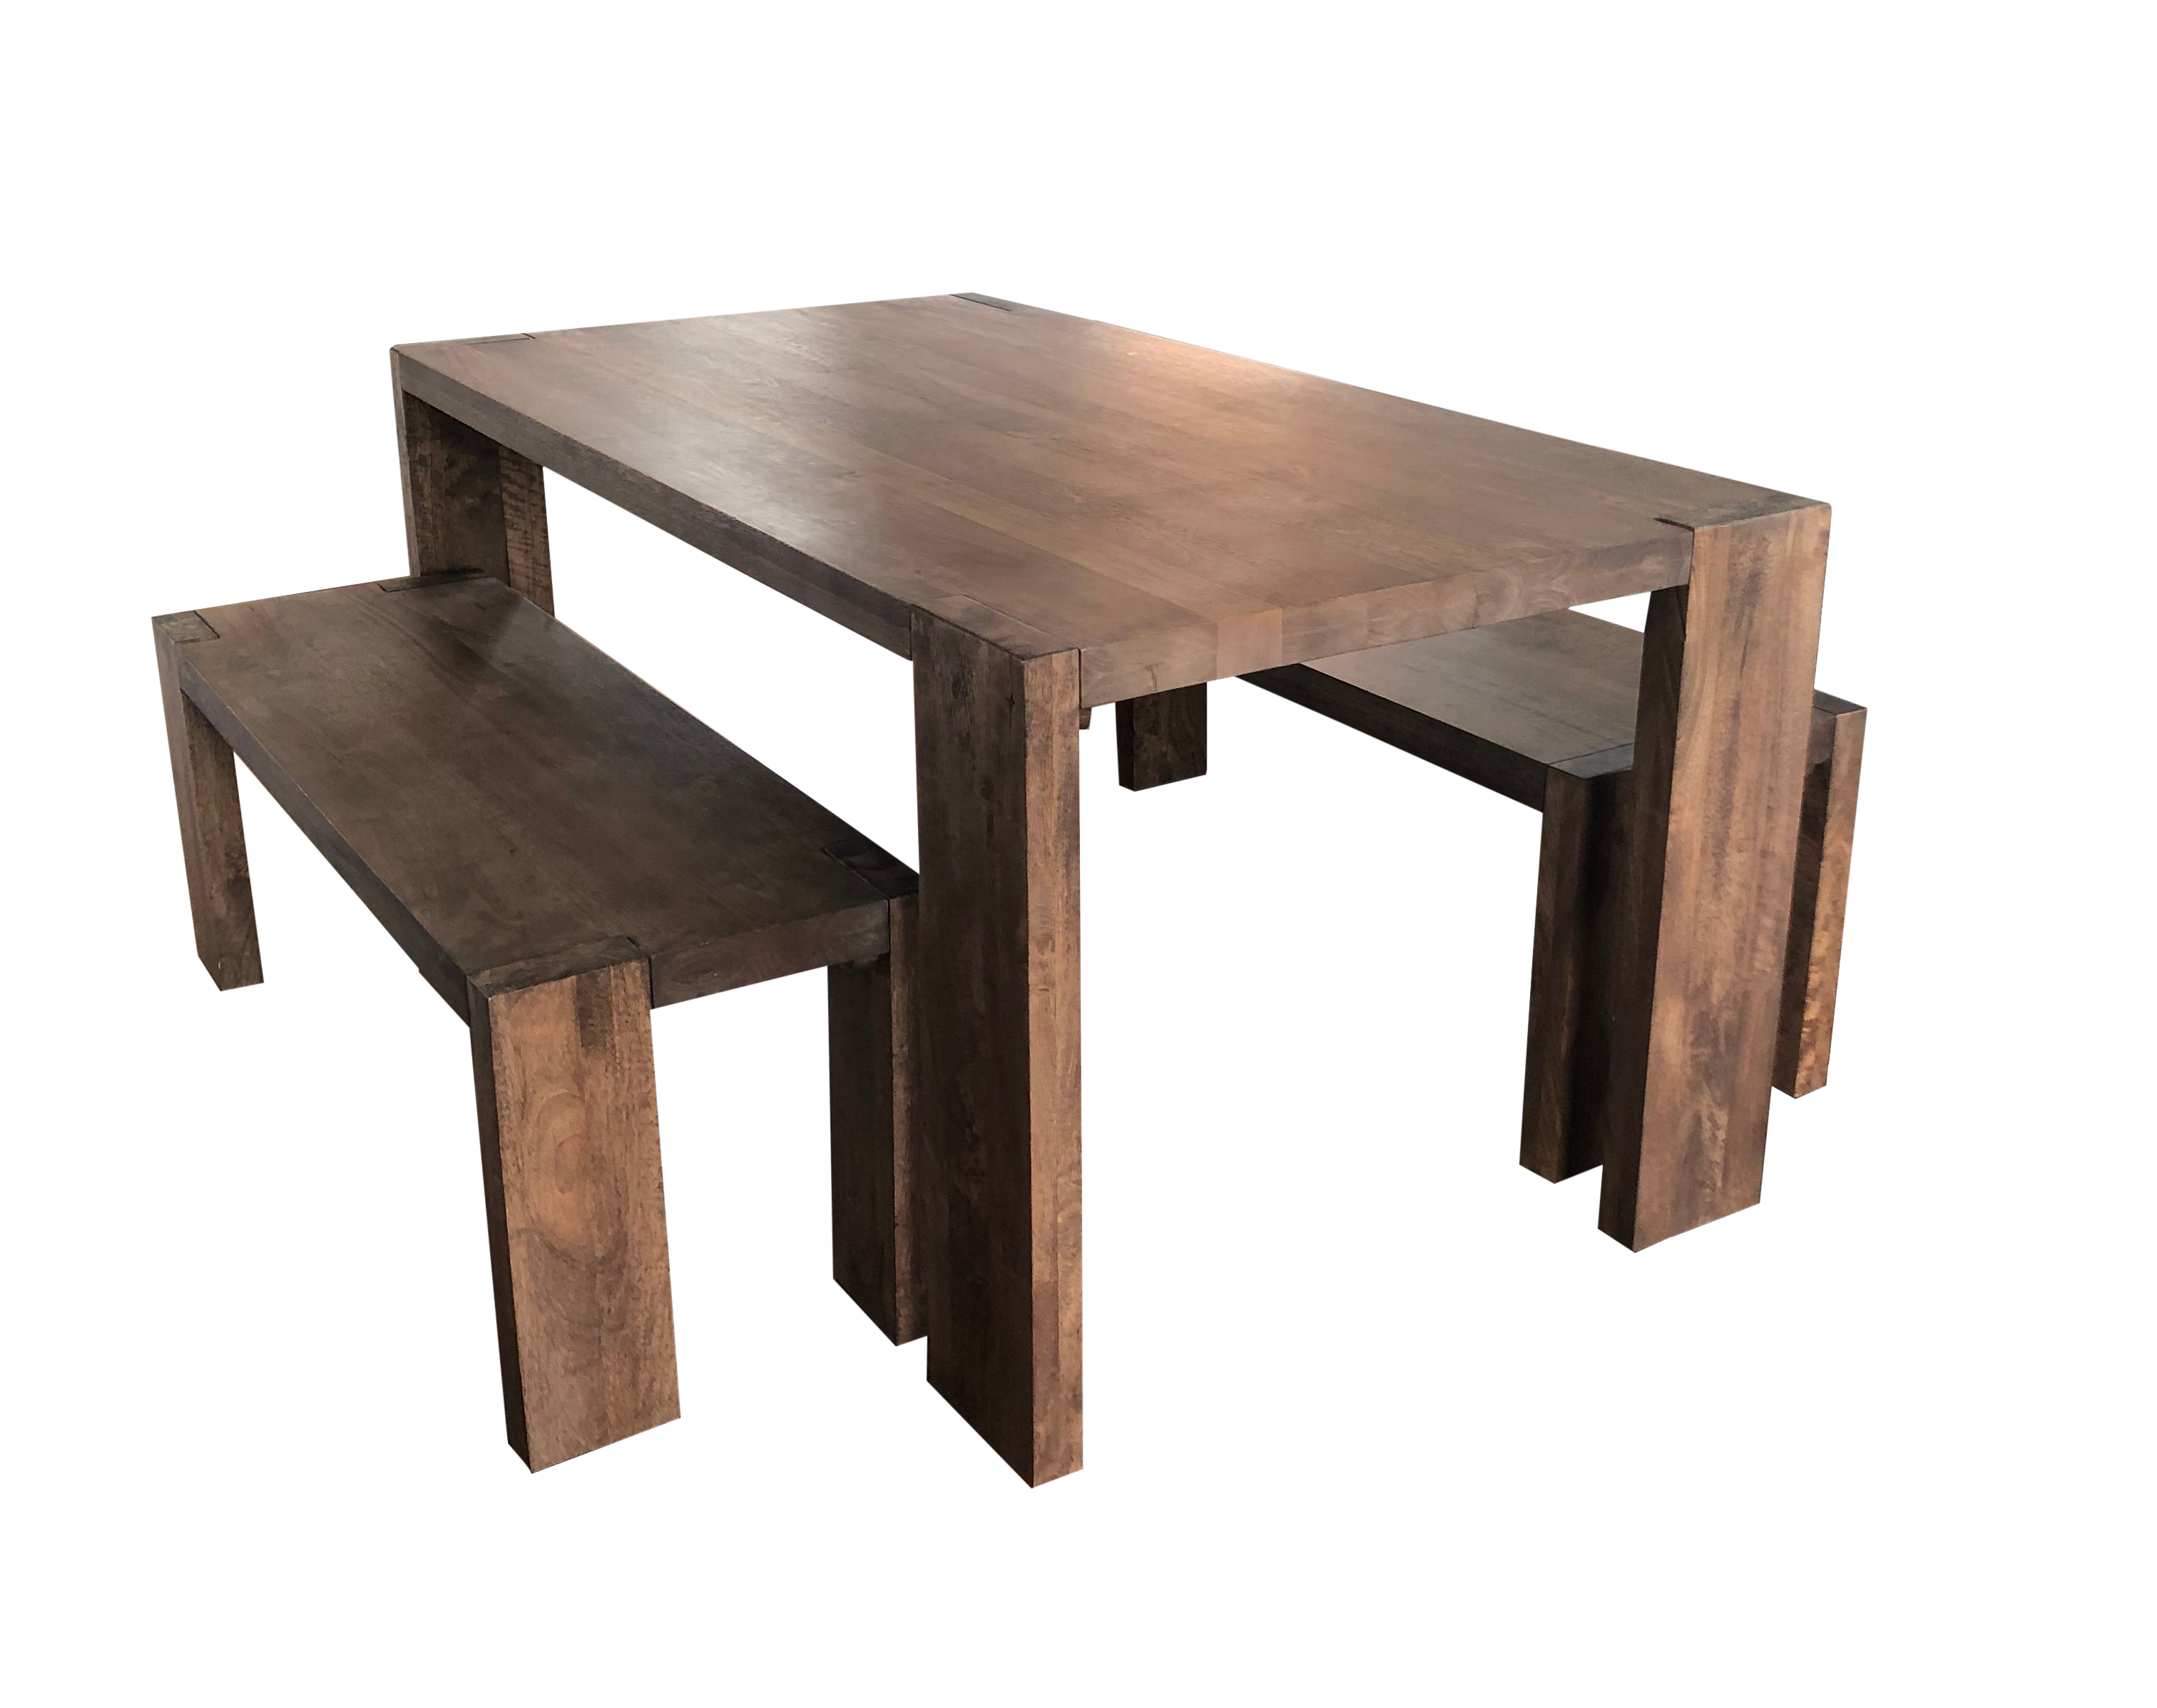 Admirable Cb2 Blox Dining Table Benches Caraccident5 Cool Chair Designs And Ideas Caraccident5Info